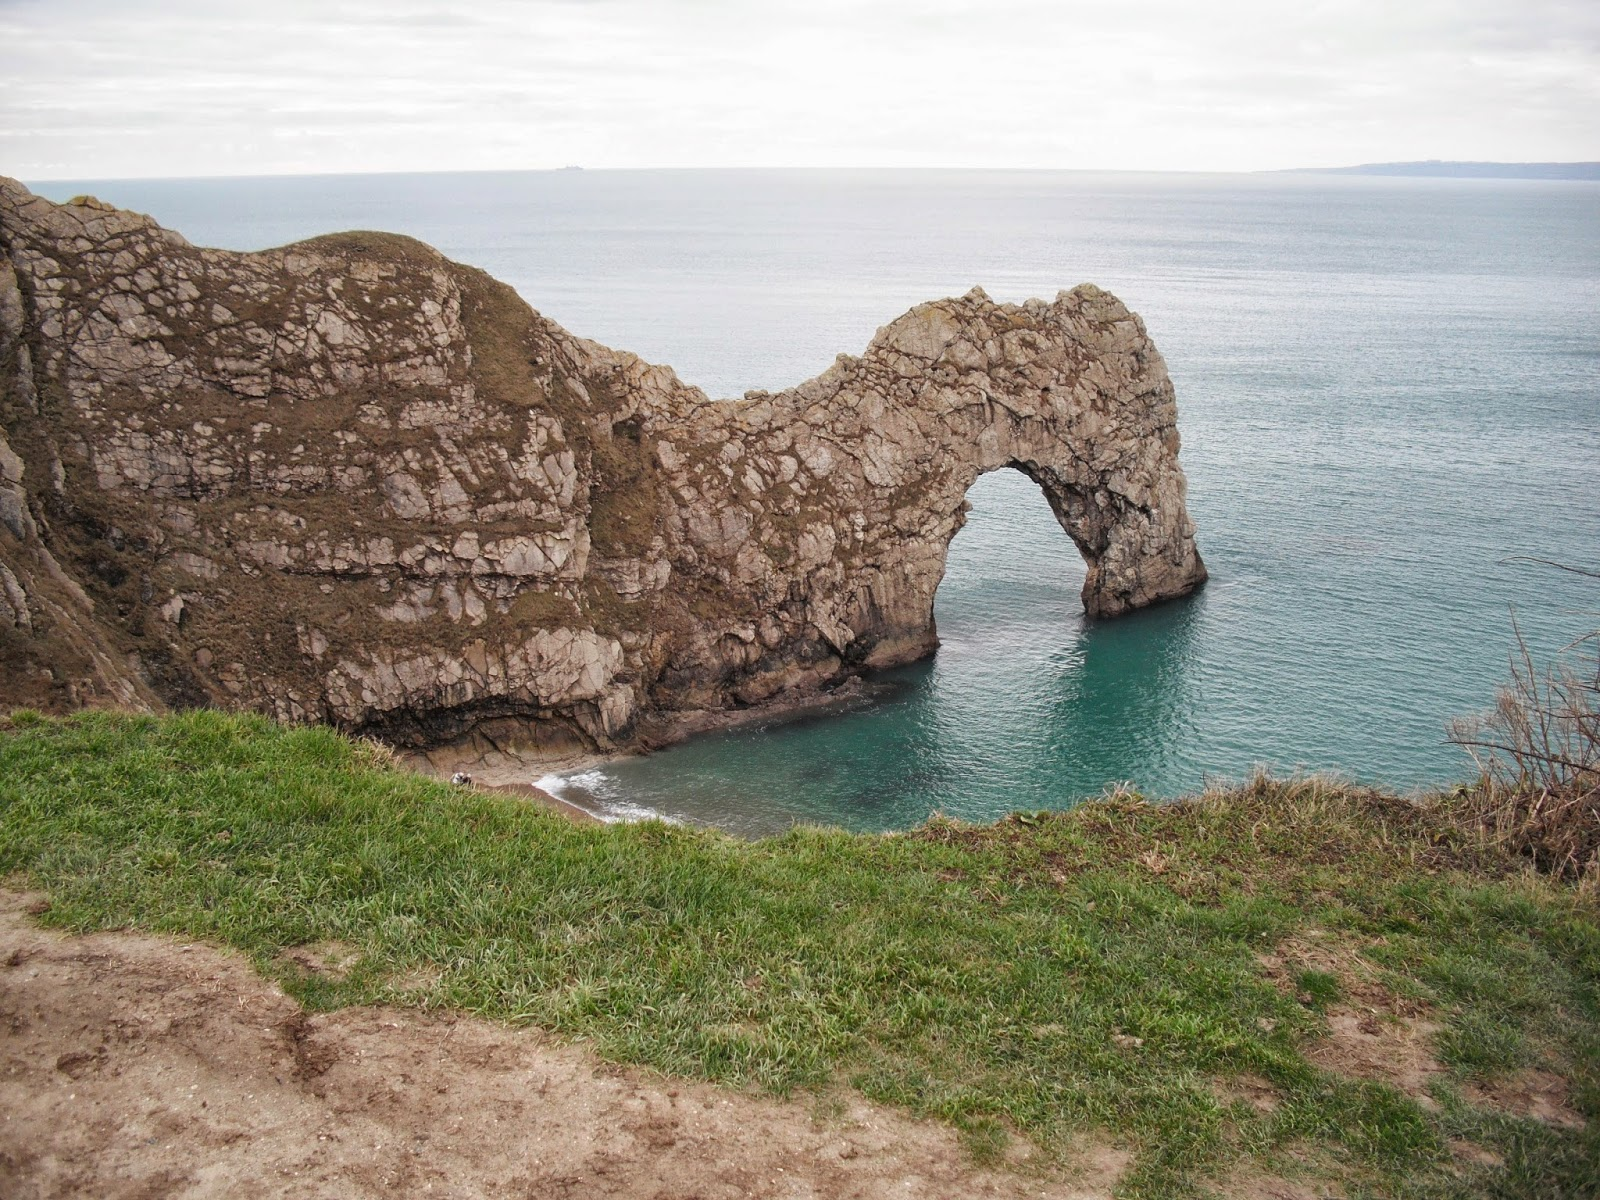 Photos show Durdle Dor; Osmington Mills; Bowleaze Cove; View to Weymouth and Portland; George 111 statue in Weymouth. & Walking the English coast - the easy way!: Walk 116 Lulworth Cove to ...